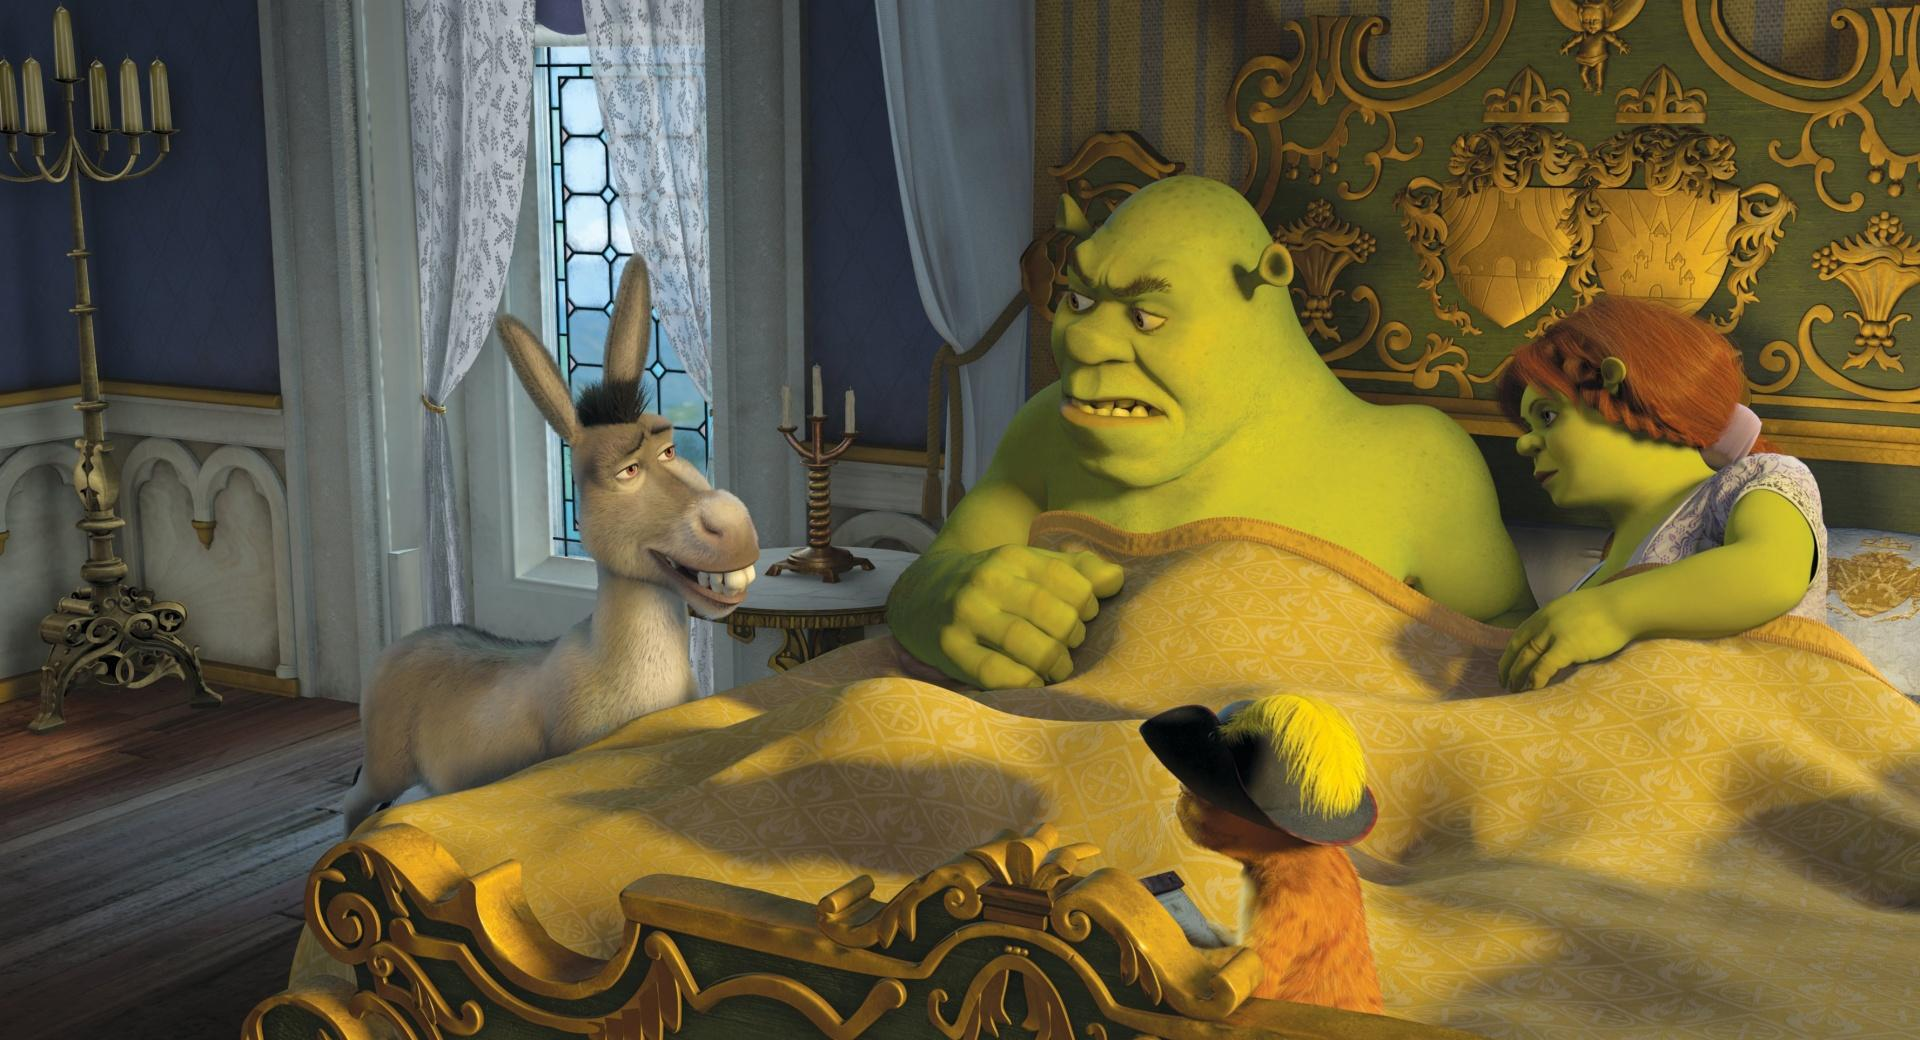 Donkey, Puss in Boots, Shrek and Princess Fiona wallpapers HD quality